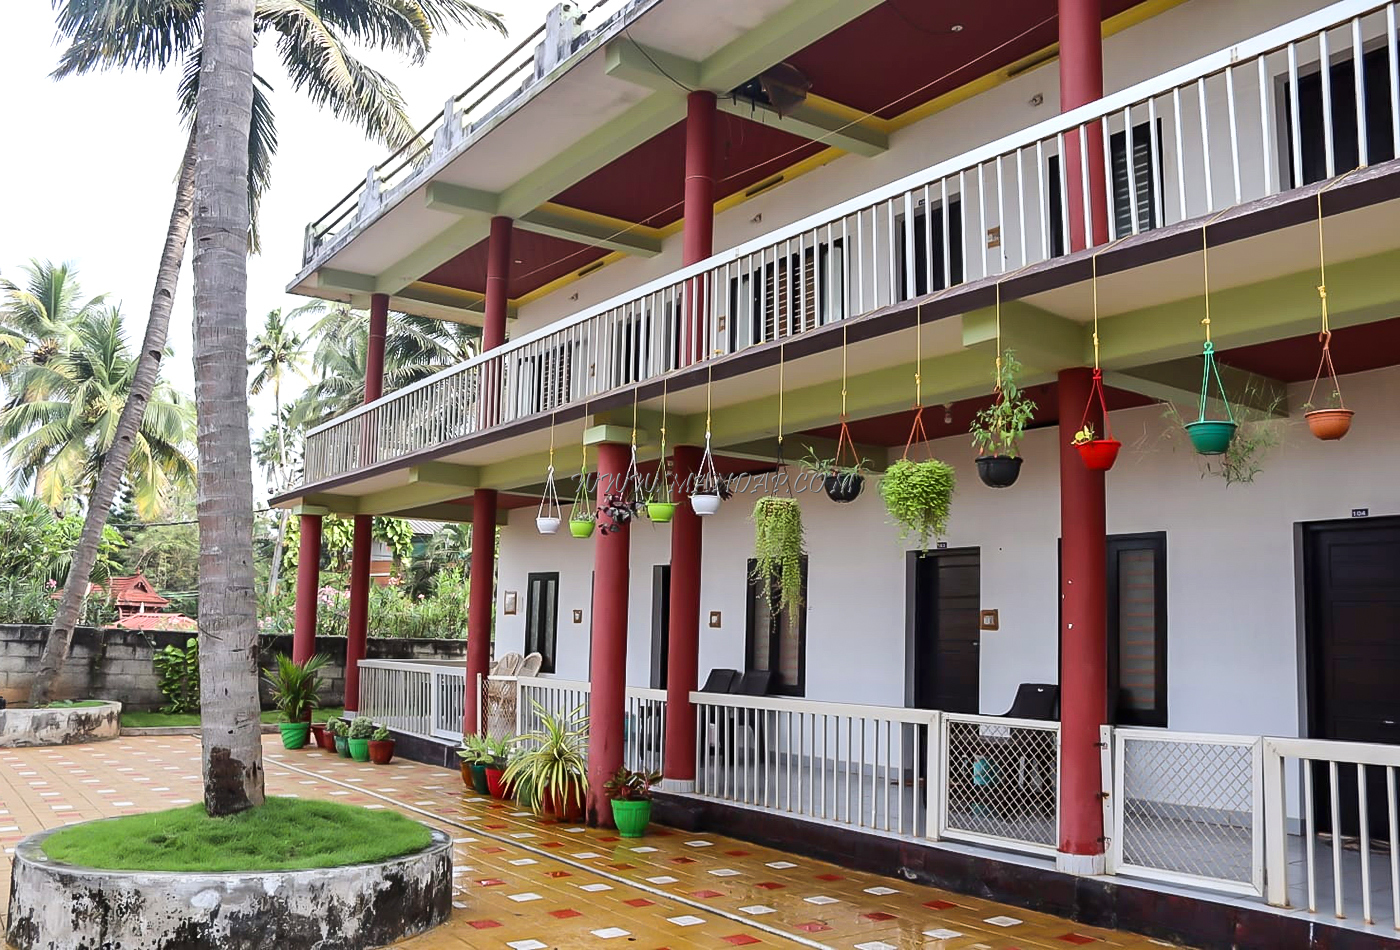 Find the availability of the New Heaven Beh Resort in Varkala, Trivandrum and avail special offers